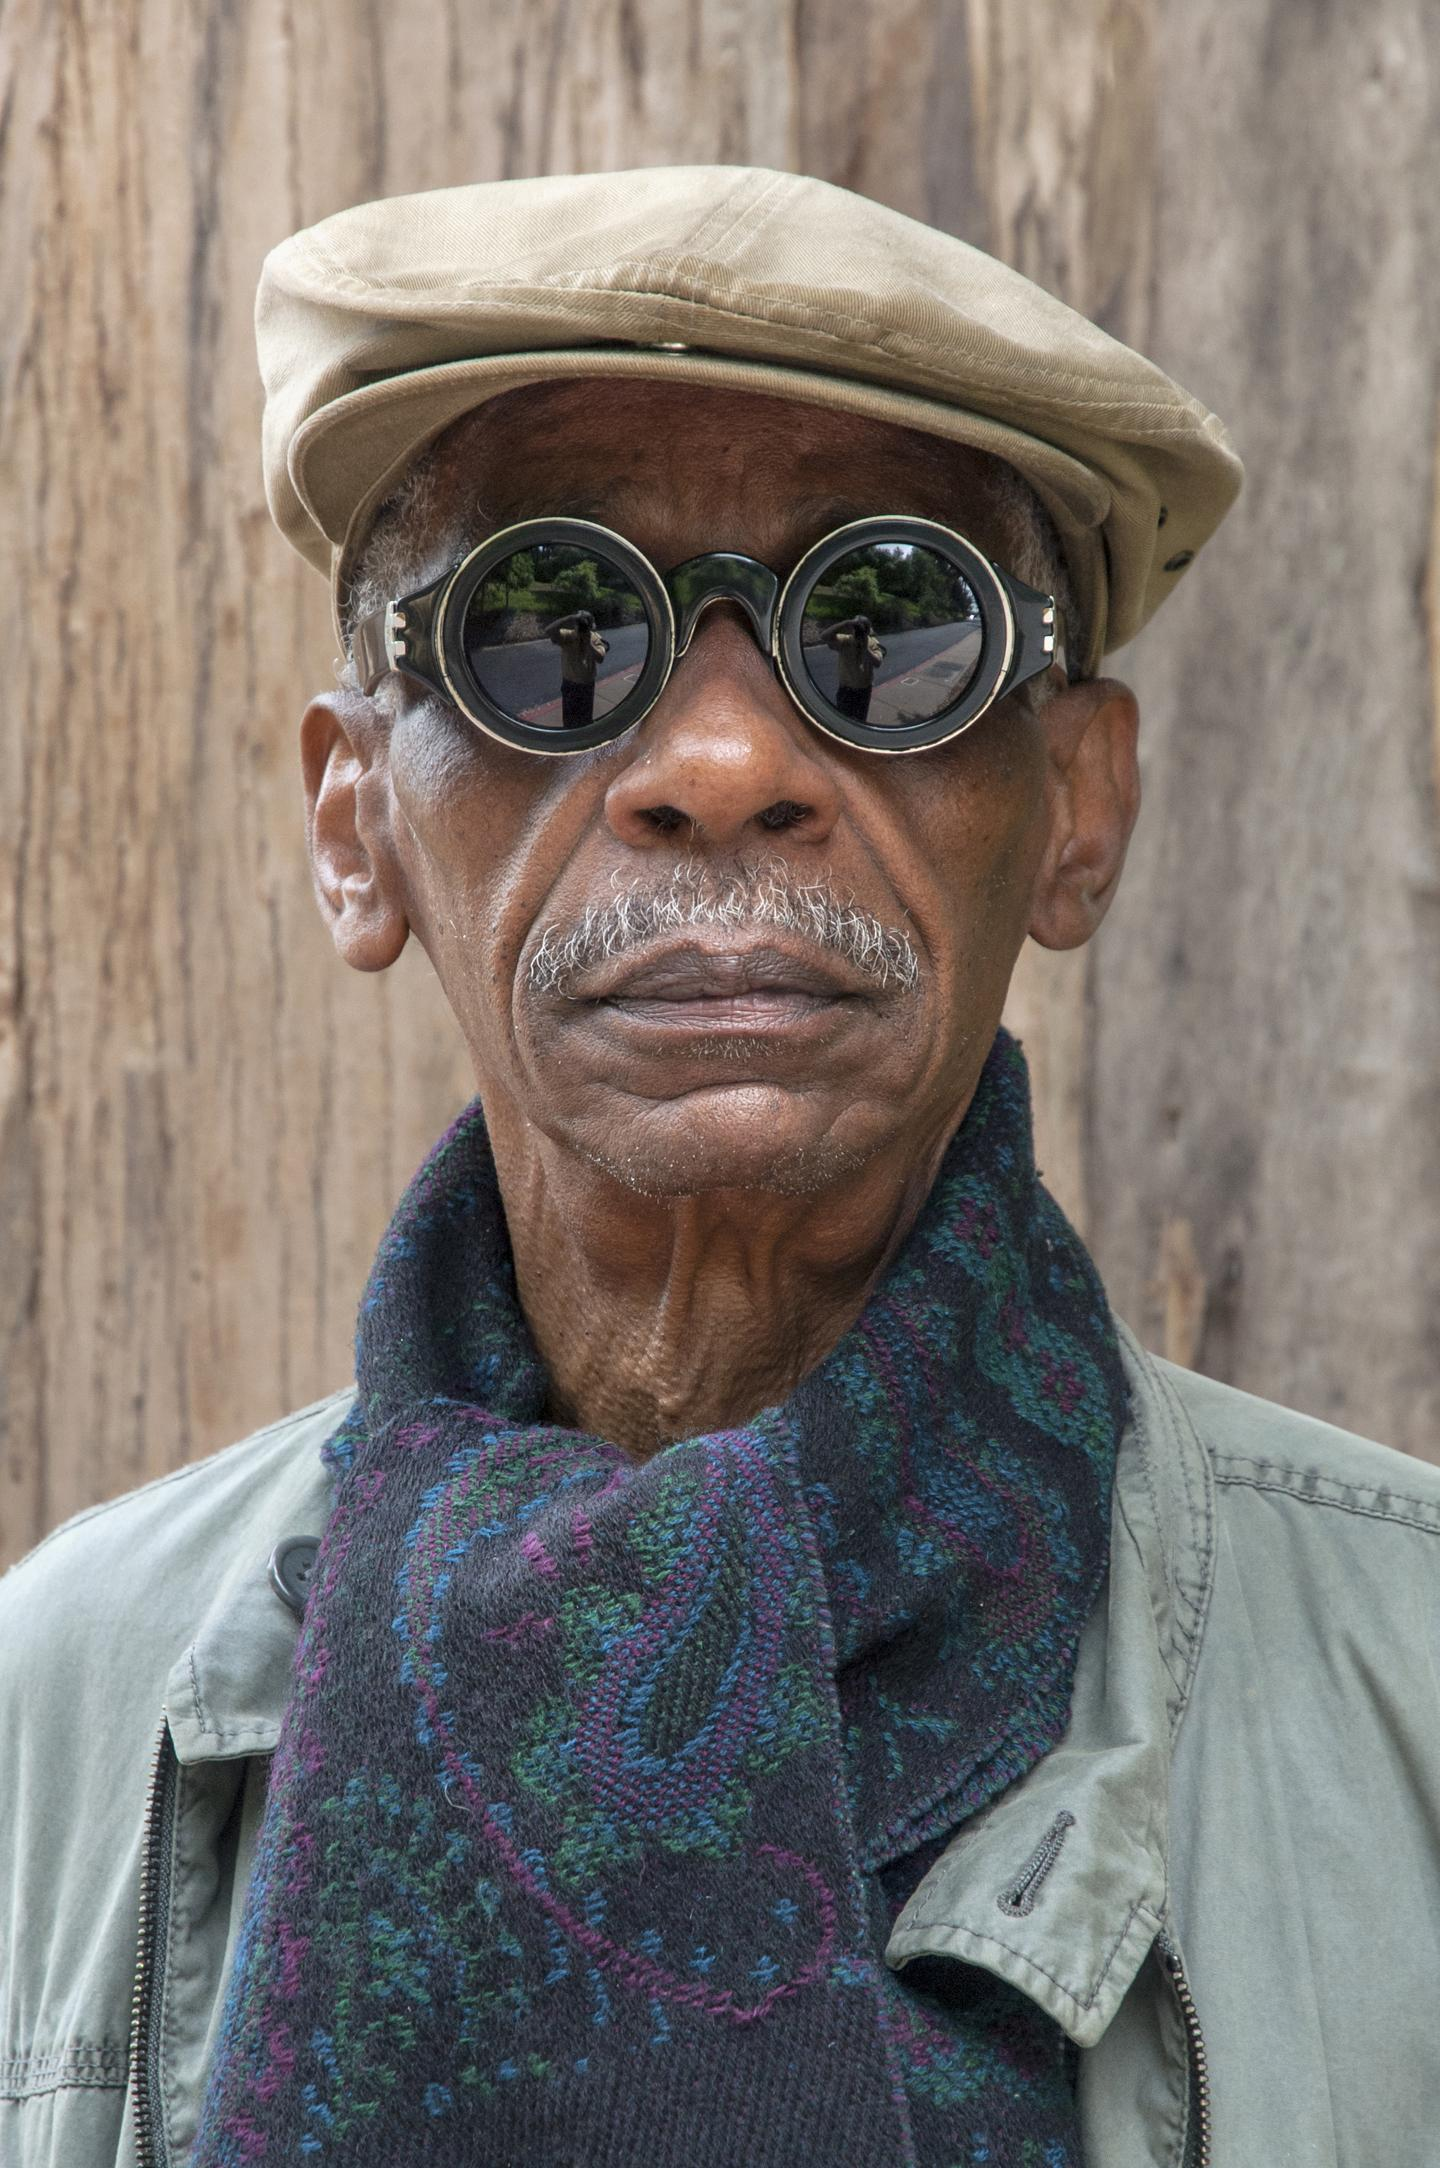 A photographic portrait shows a dark-skinned older man wearing circular mirrored sunglasses, a khaki flat cap, and a multicolored scarf.